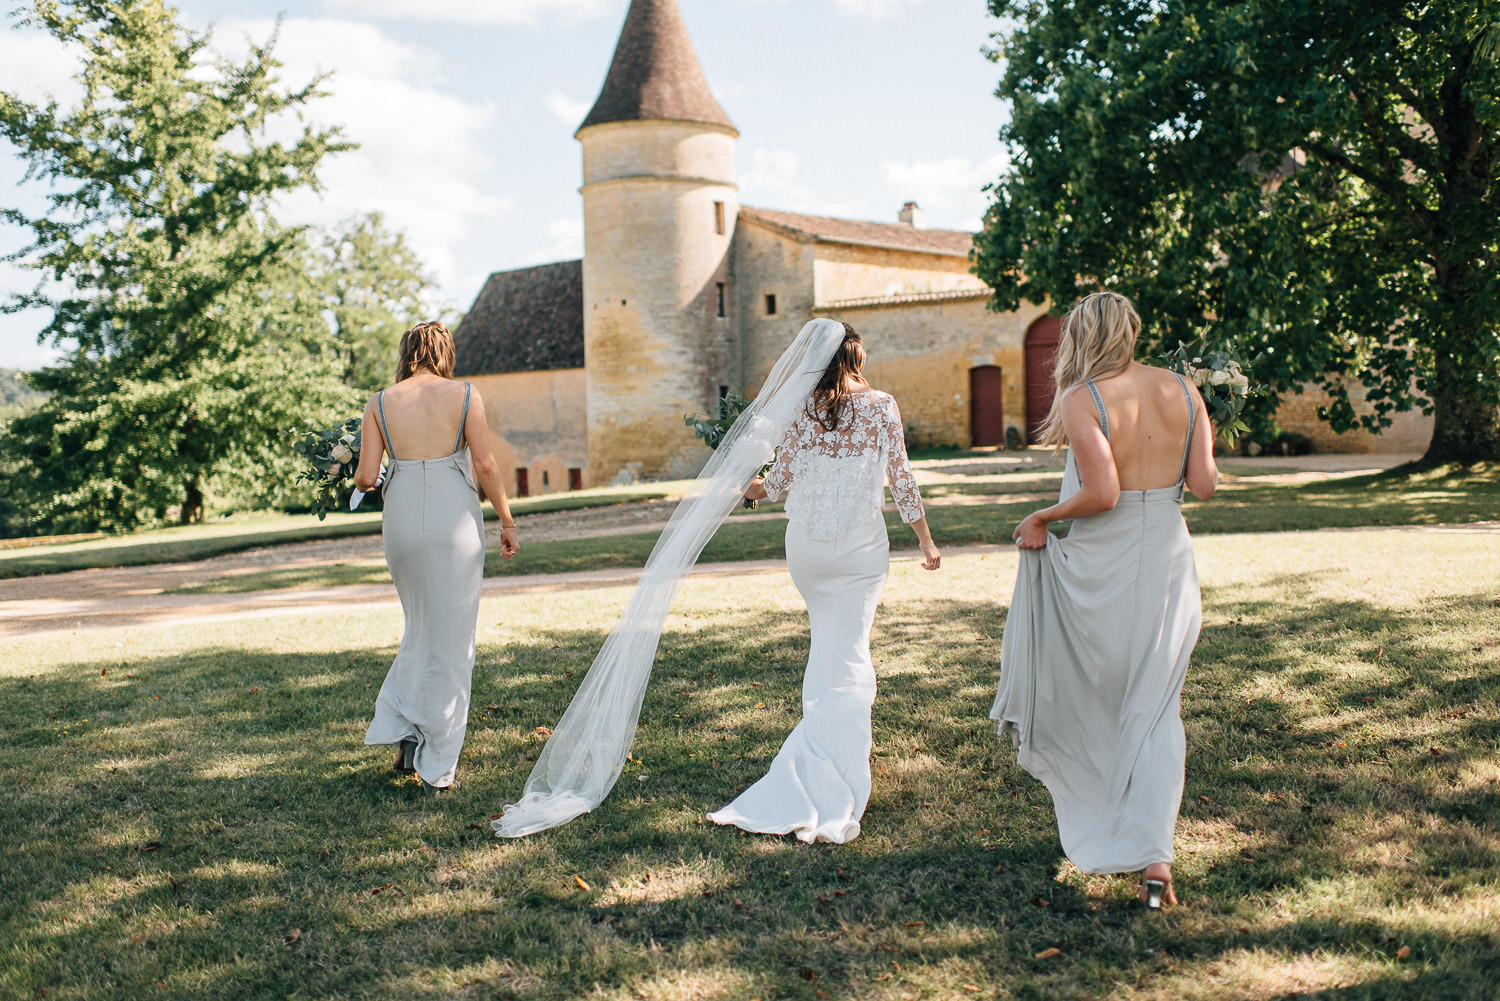 Rime Arodaky wedding dress with veil in chateau de la bourlie wedding by destination wedding photographer the shannons photography